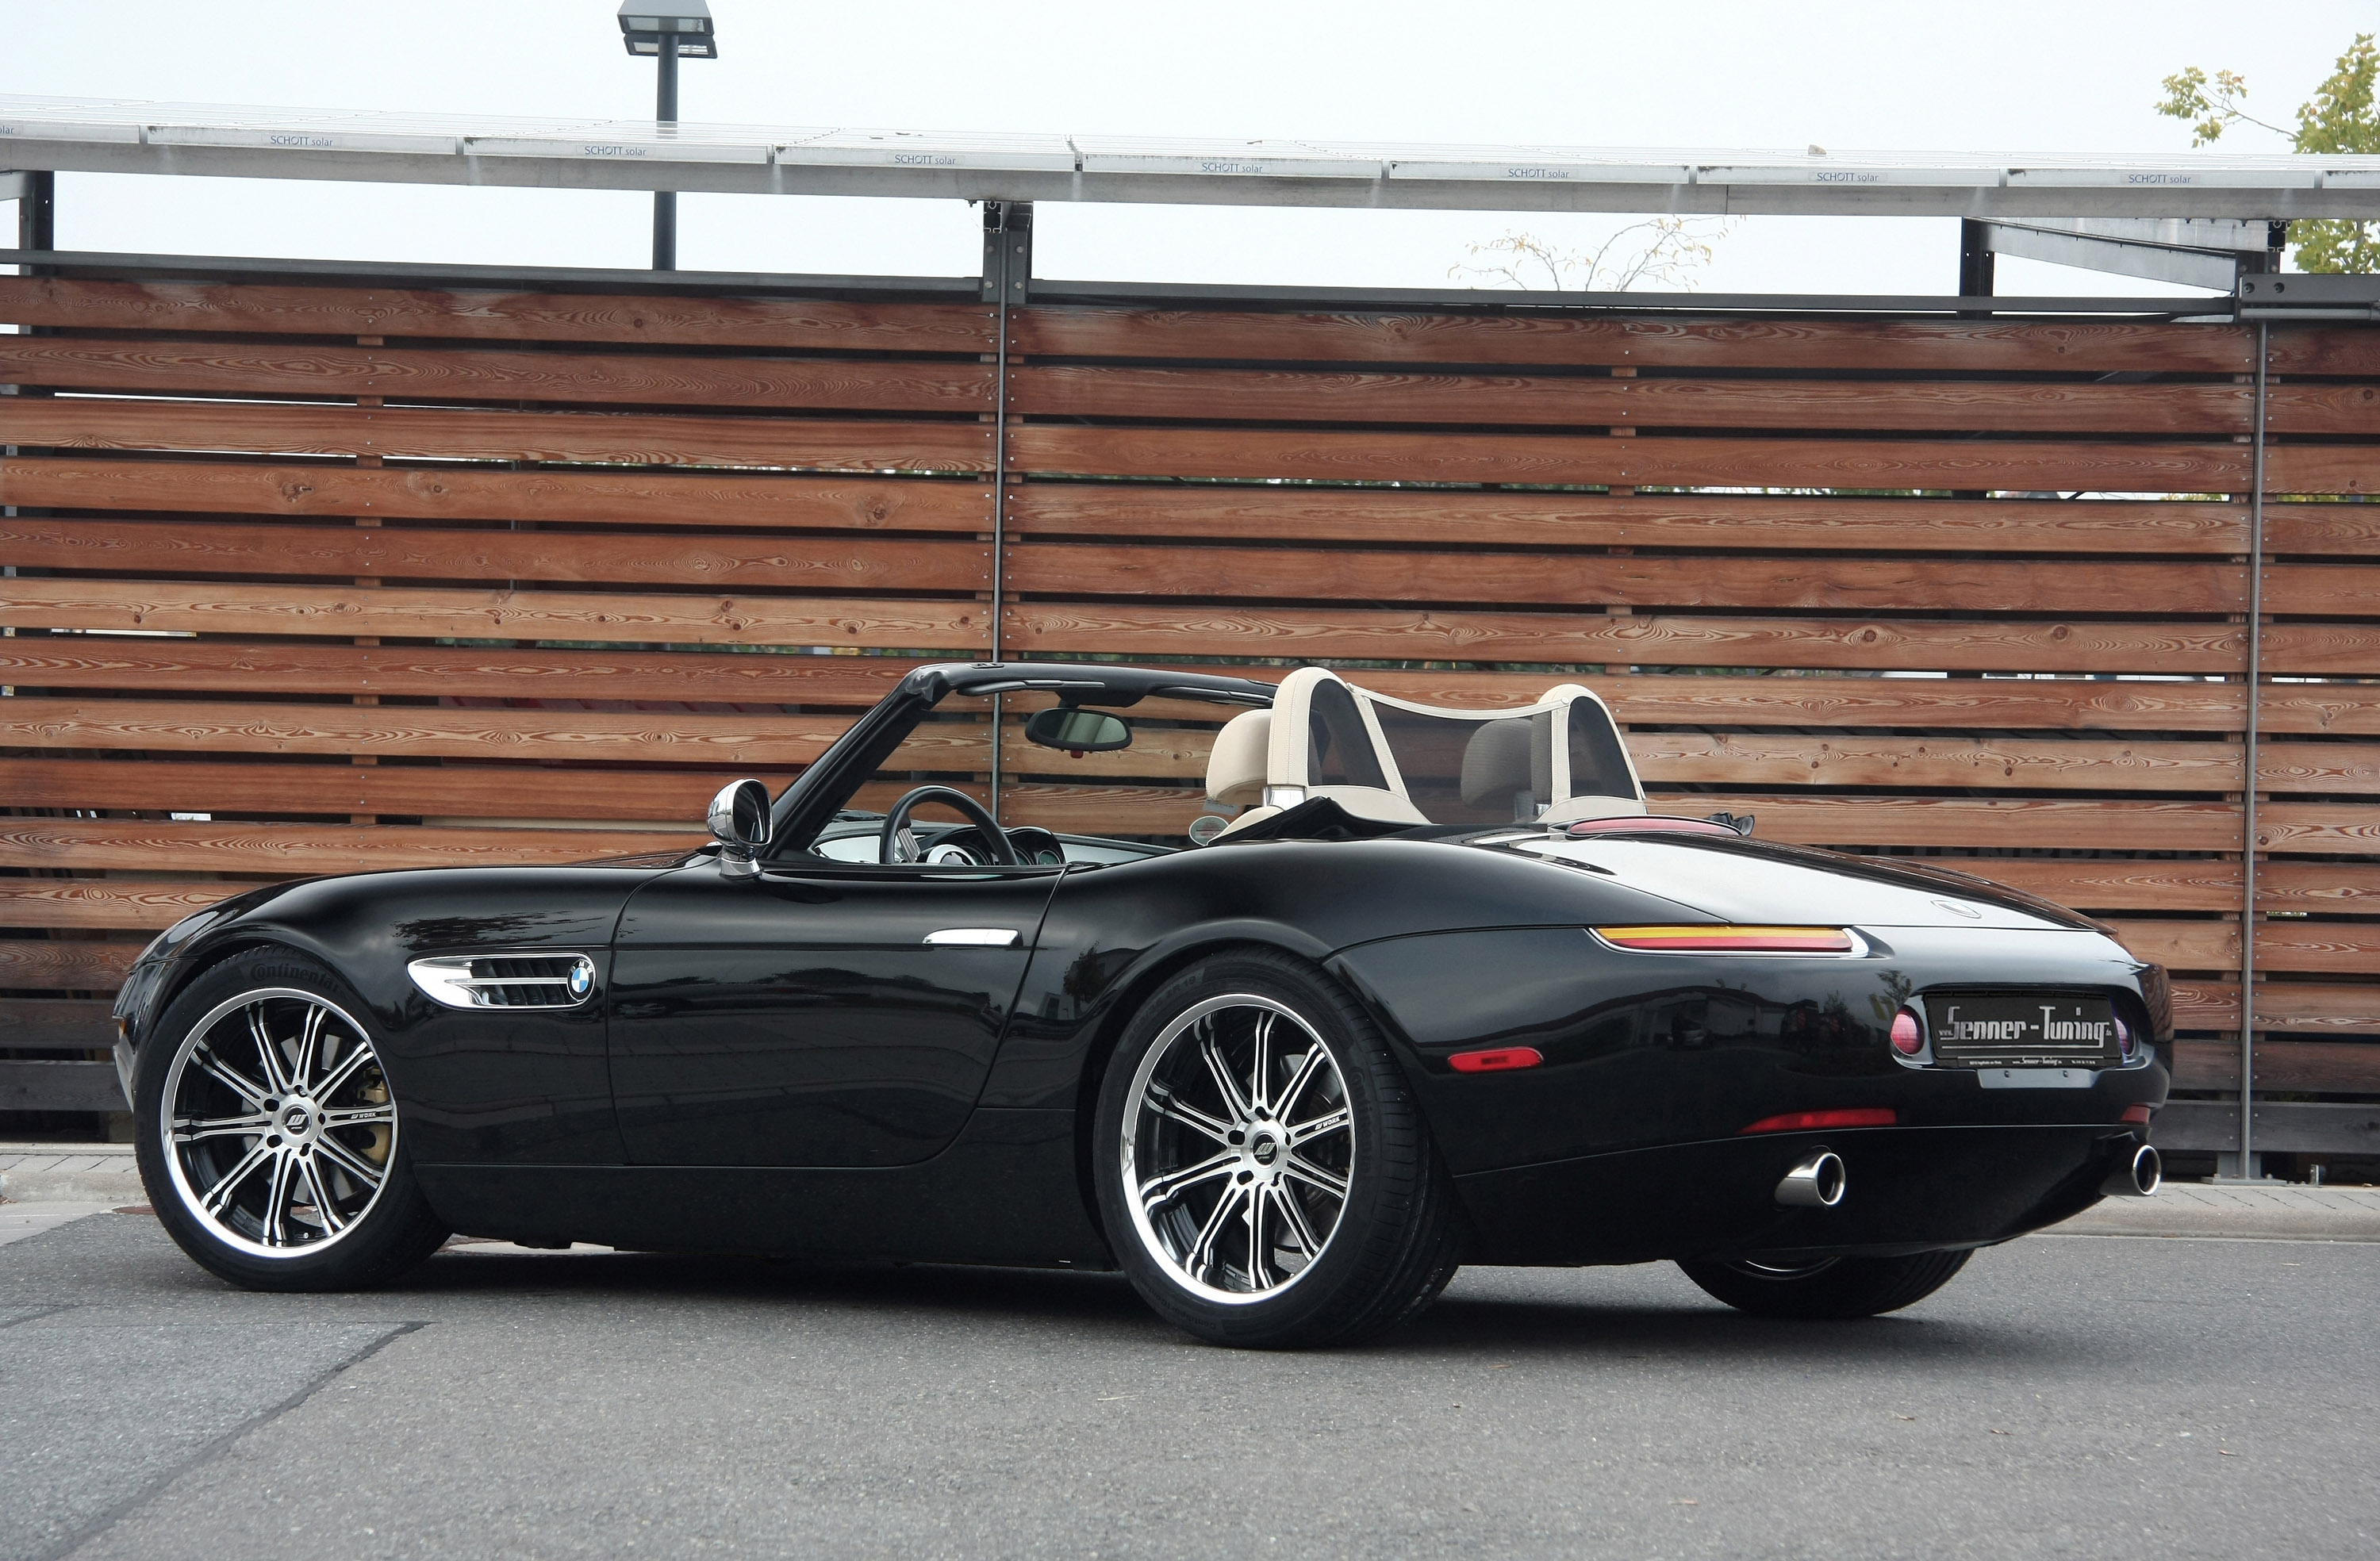 The Bmw Z4 Restoring The Cool Of Bmw Z And The Modern Roadster